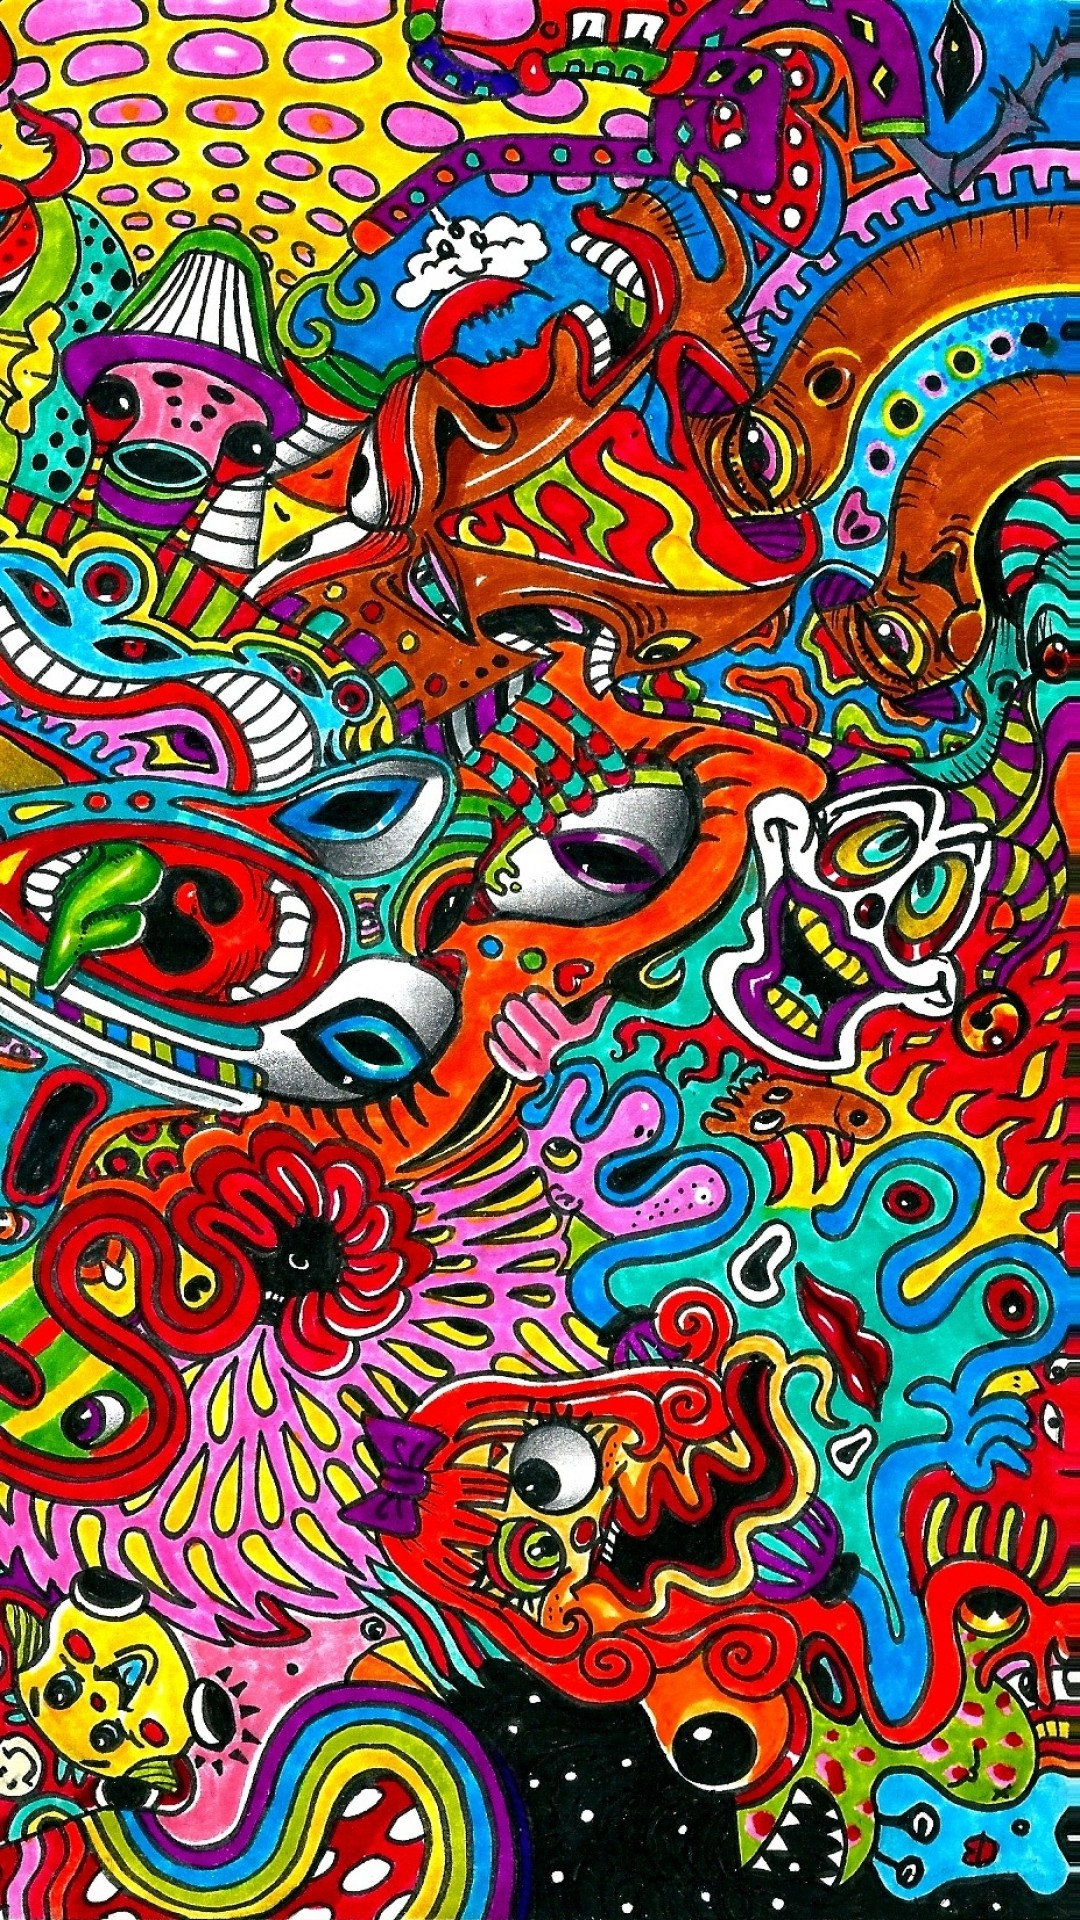 Iphone Wallpapers Hd Zedge Trippy Iphone 6 Wallpaper 69 Images